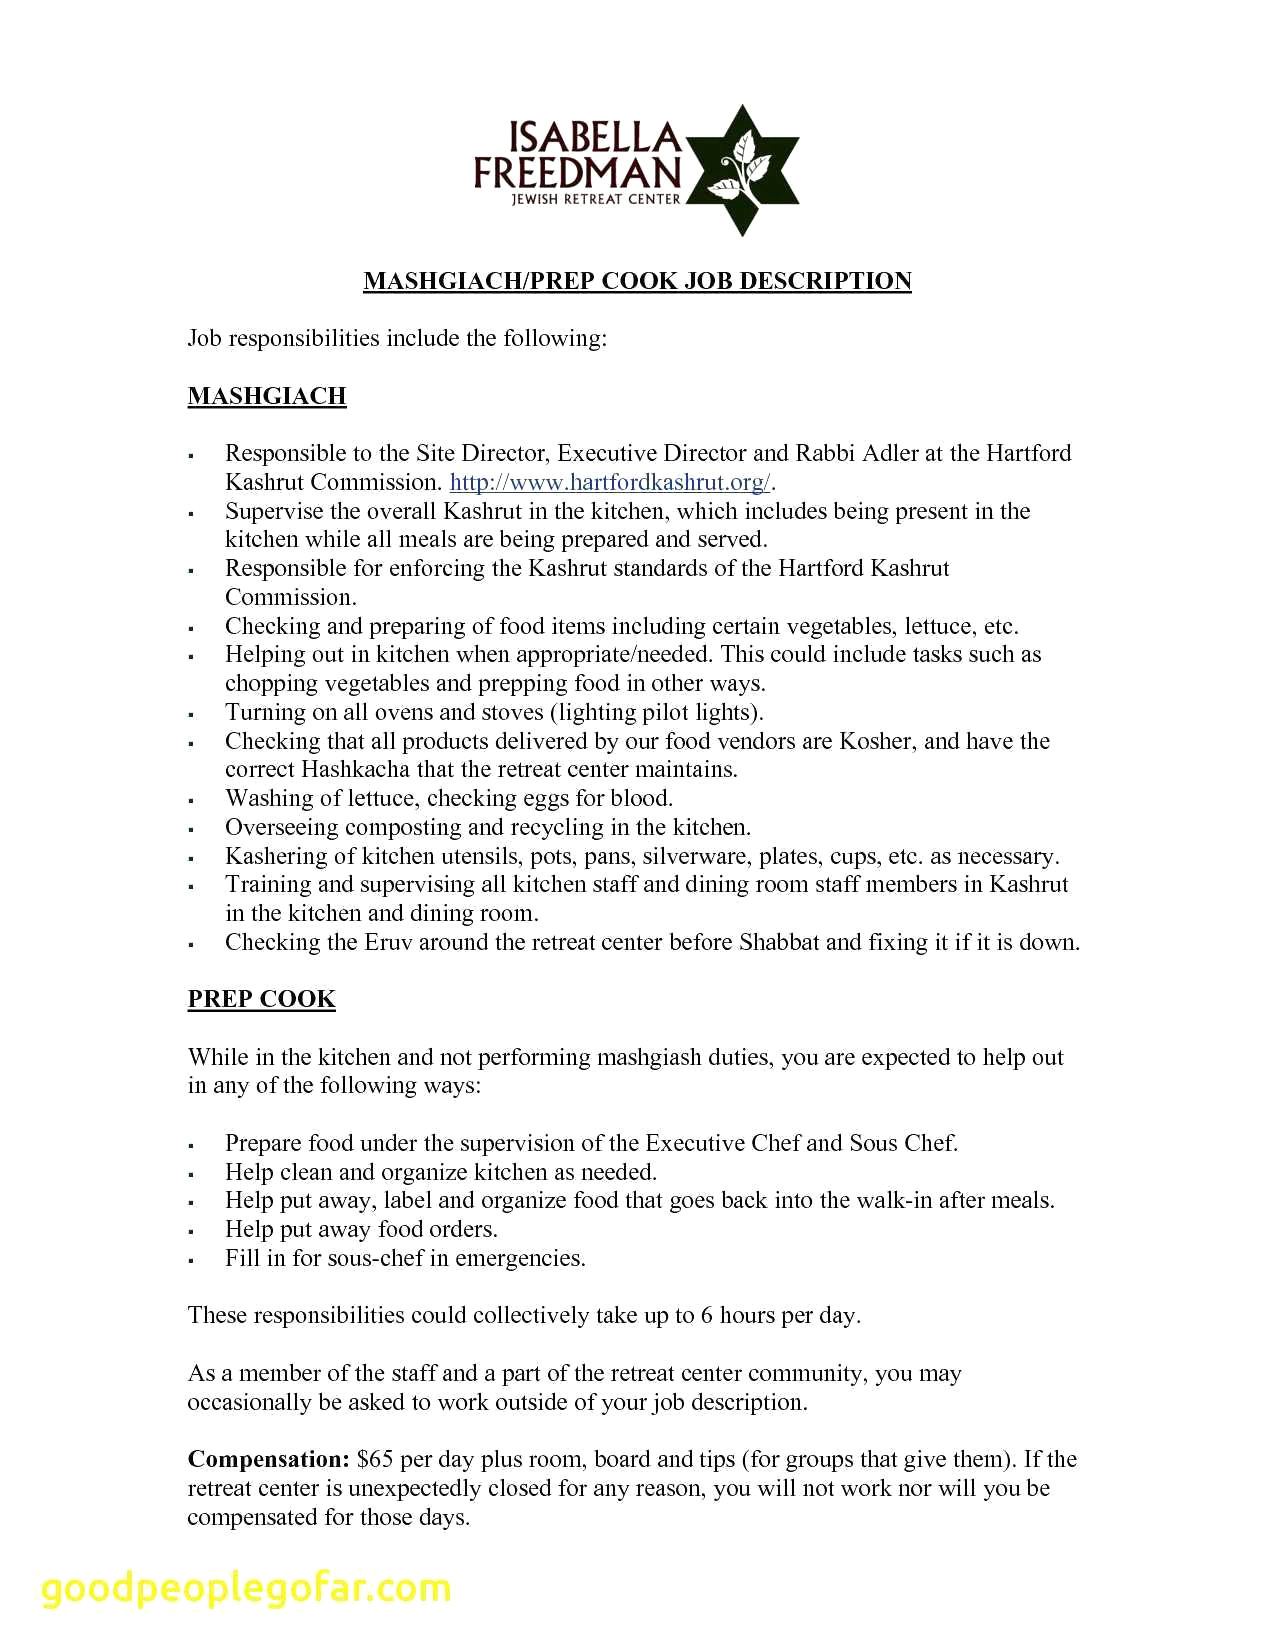 sales rep resume Collection-How to Write A Good Job Resume From Job Letter 0d Related Post 19-o